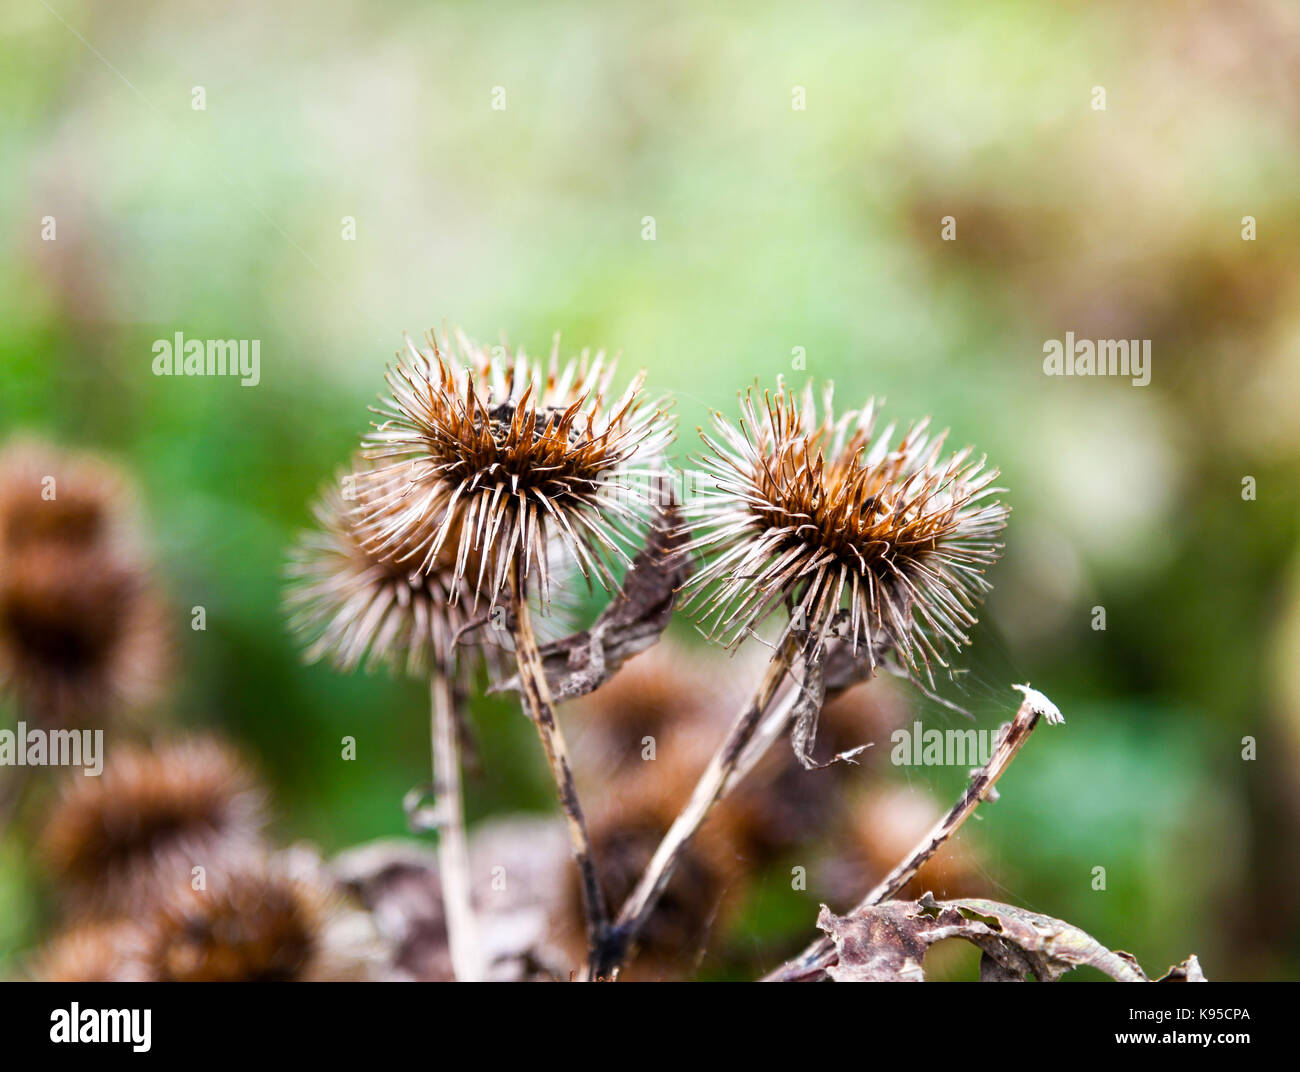 Spiked Seed heads or Burs or Burrs of an Arctium or Burdock